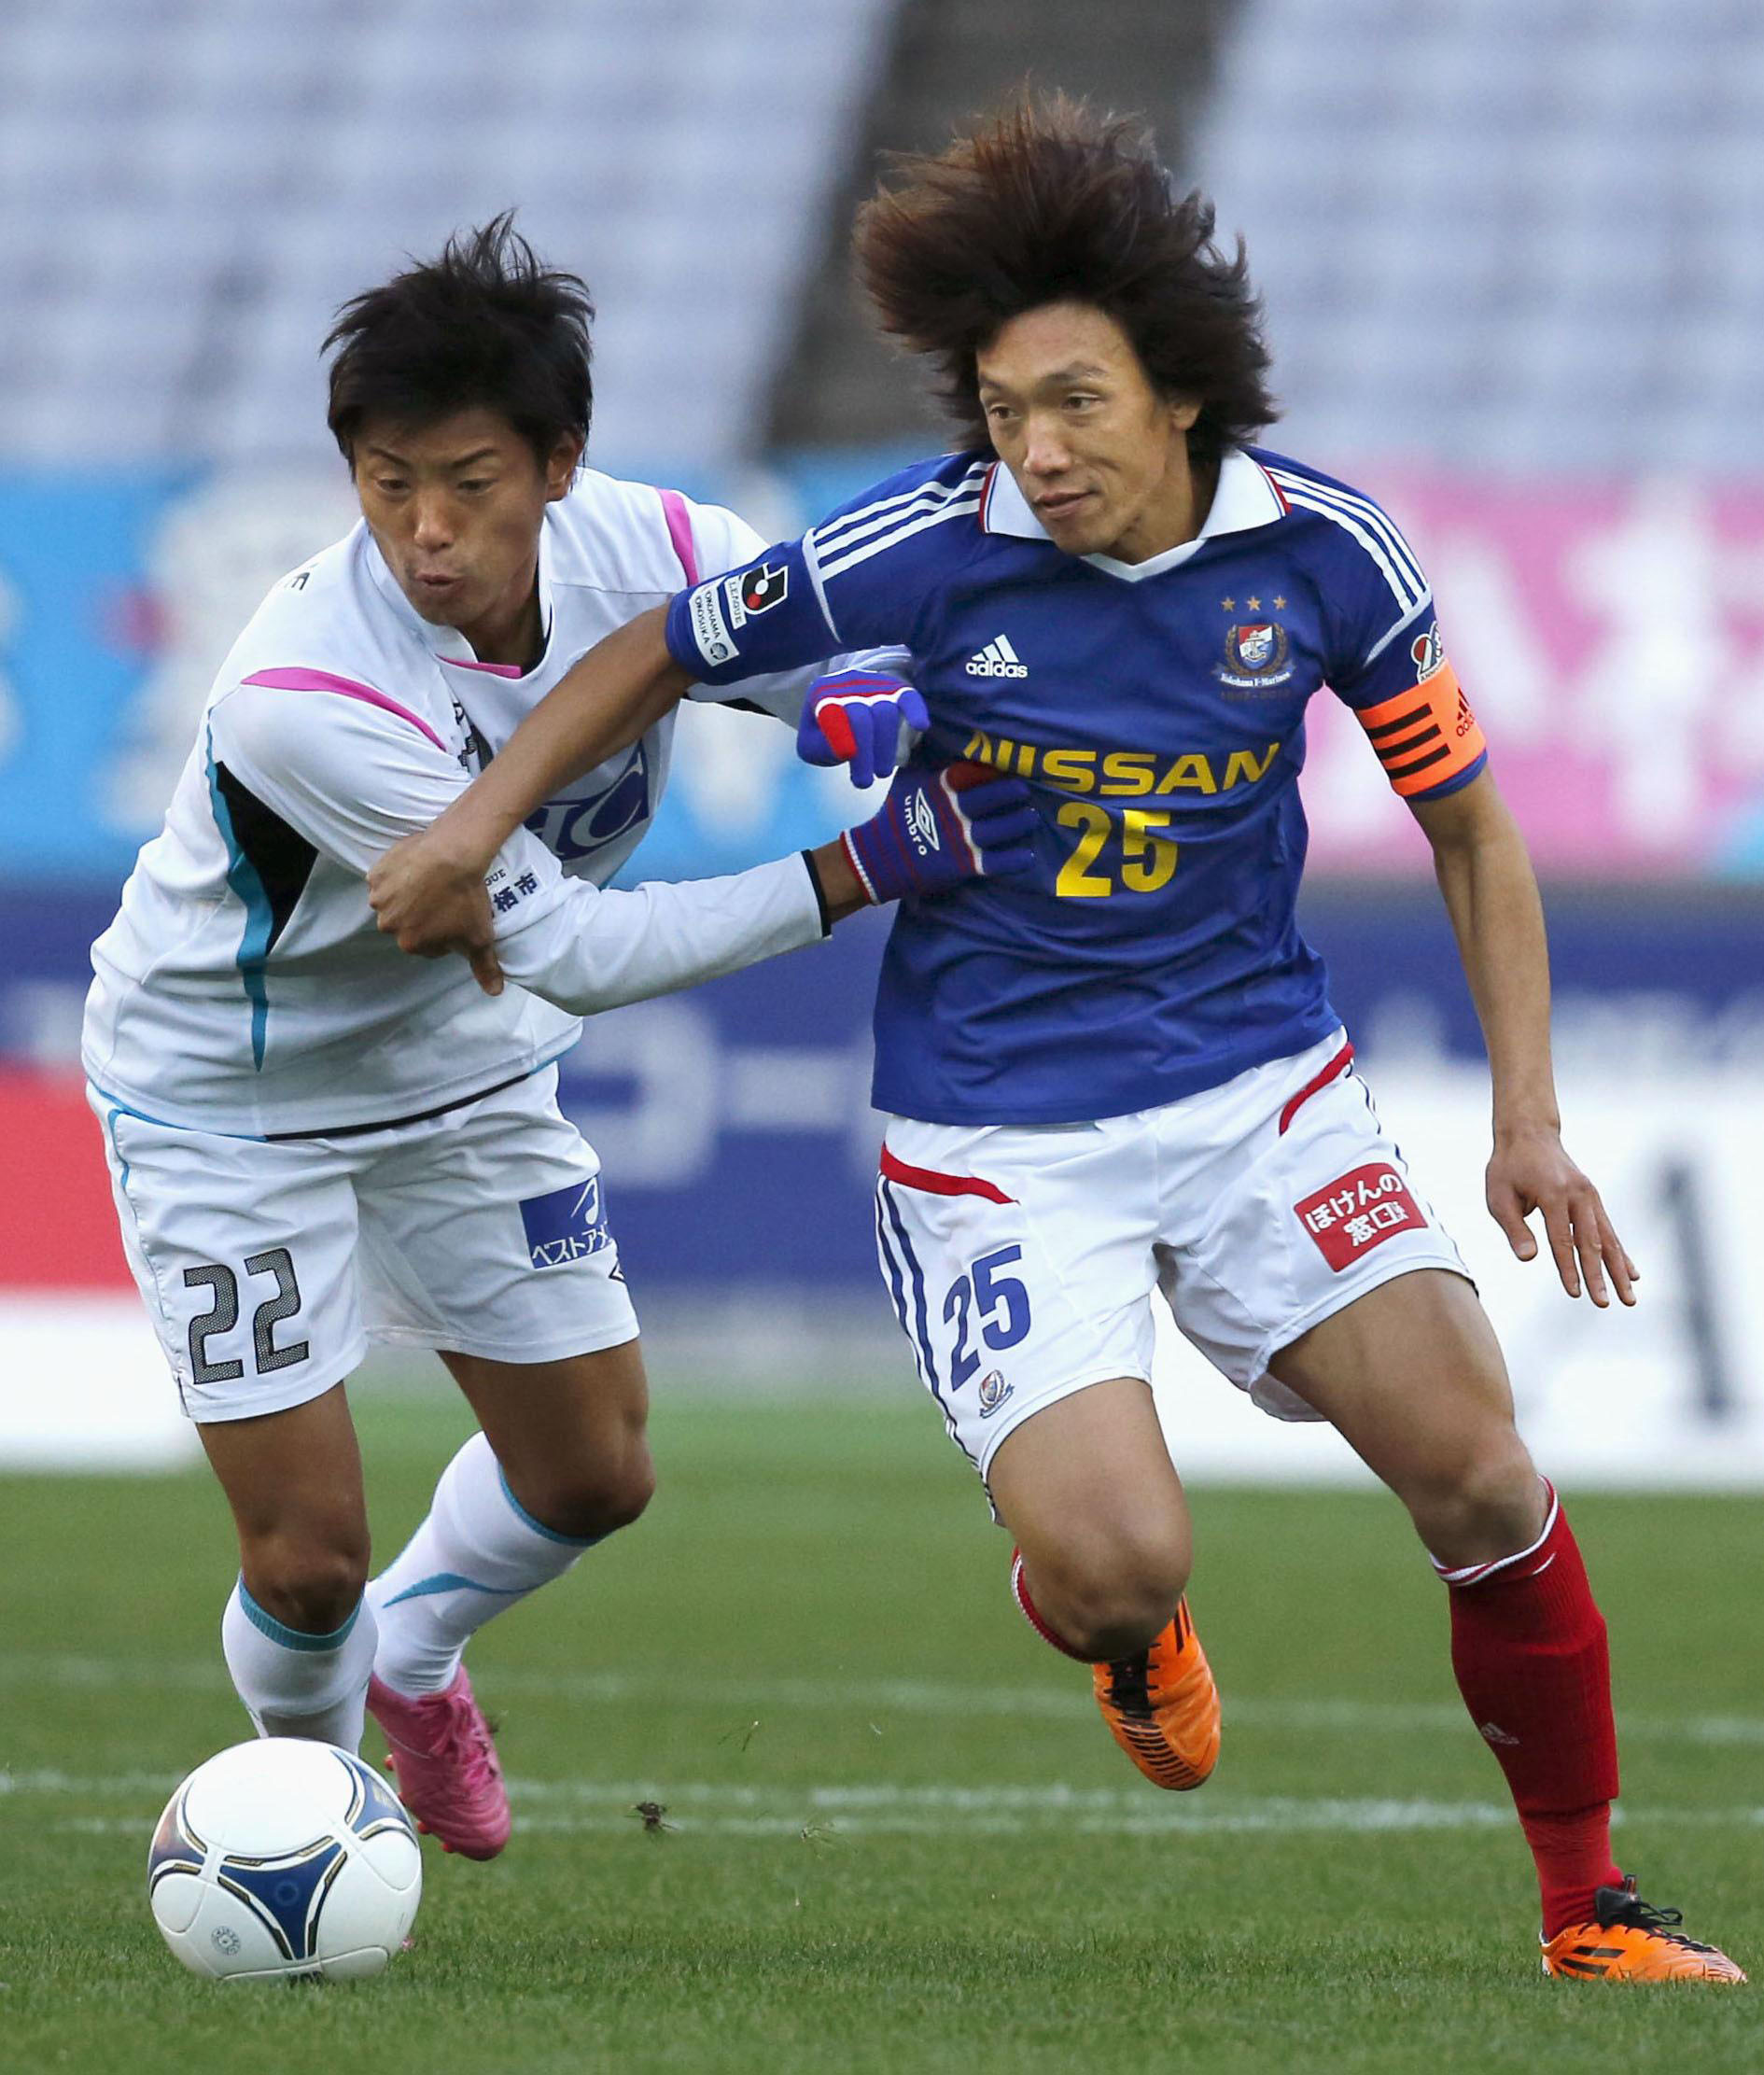 Personal touch: Yokohama's Shunsuke Nakamura (right) vies for the ball with Sagan's Kei Ikeda in J. League action on Saturday's at Nissan Stadium. F. Marinos won 1-0. | KYODO